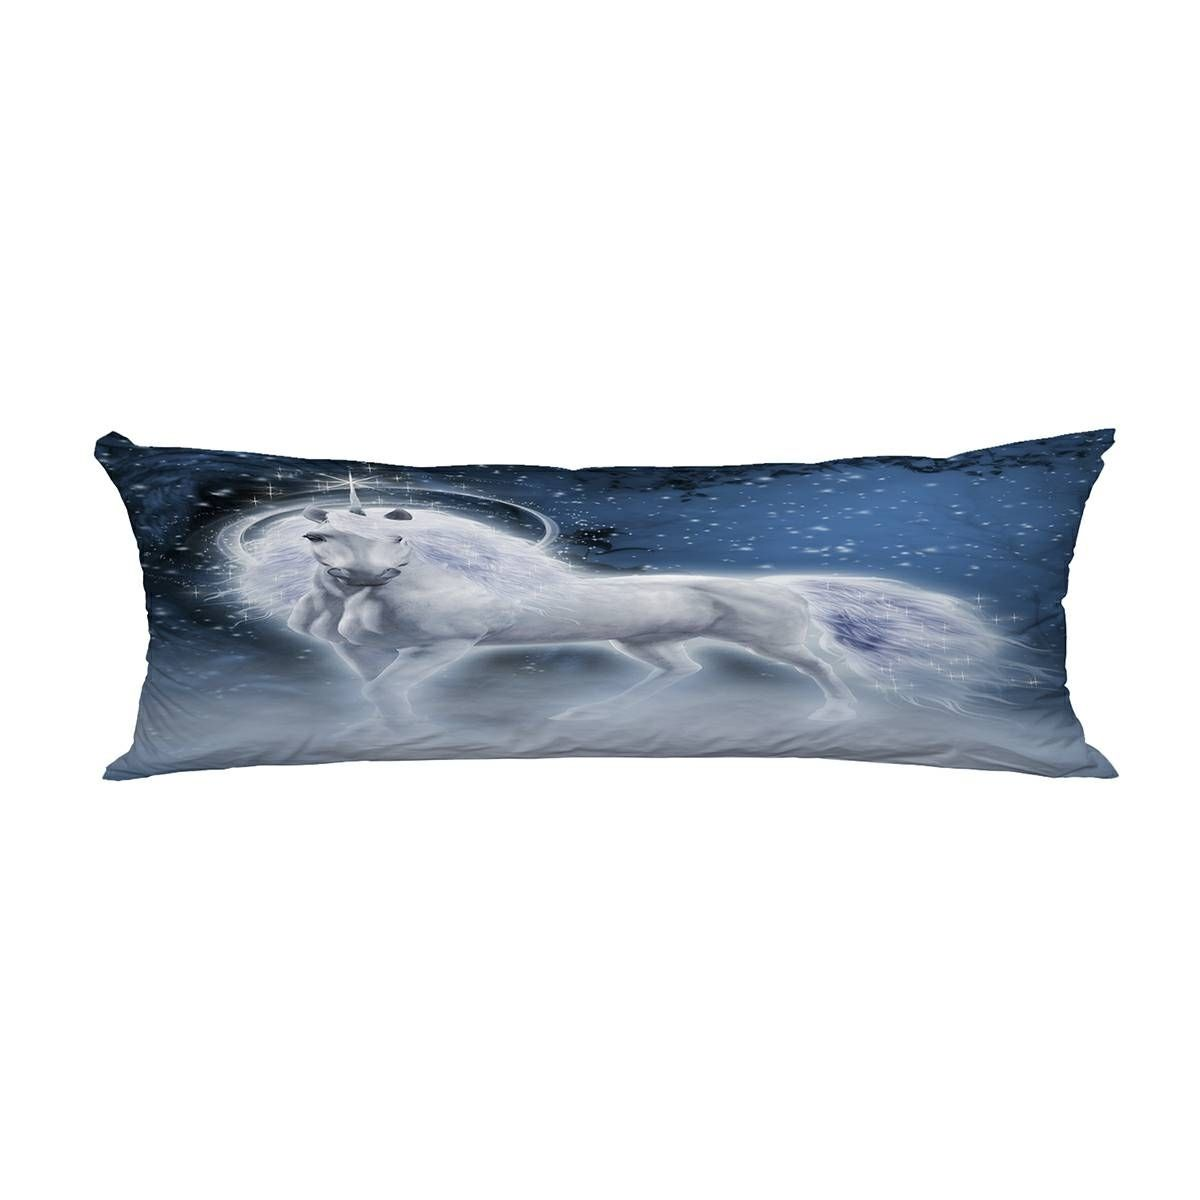 Fantasy scene white unicorn in the evening forest Pillow Cover Body Pillowcase